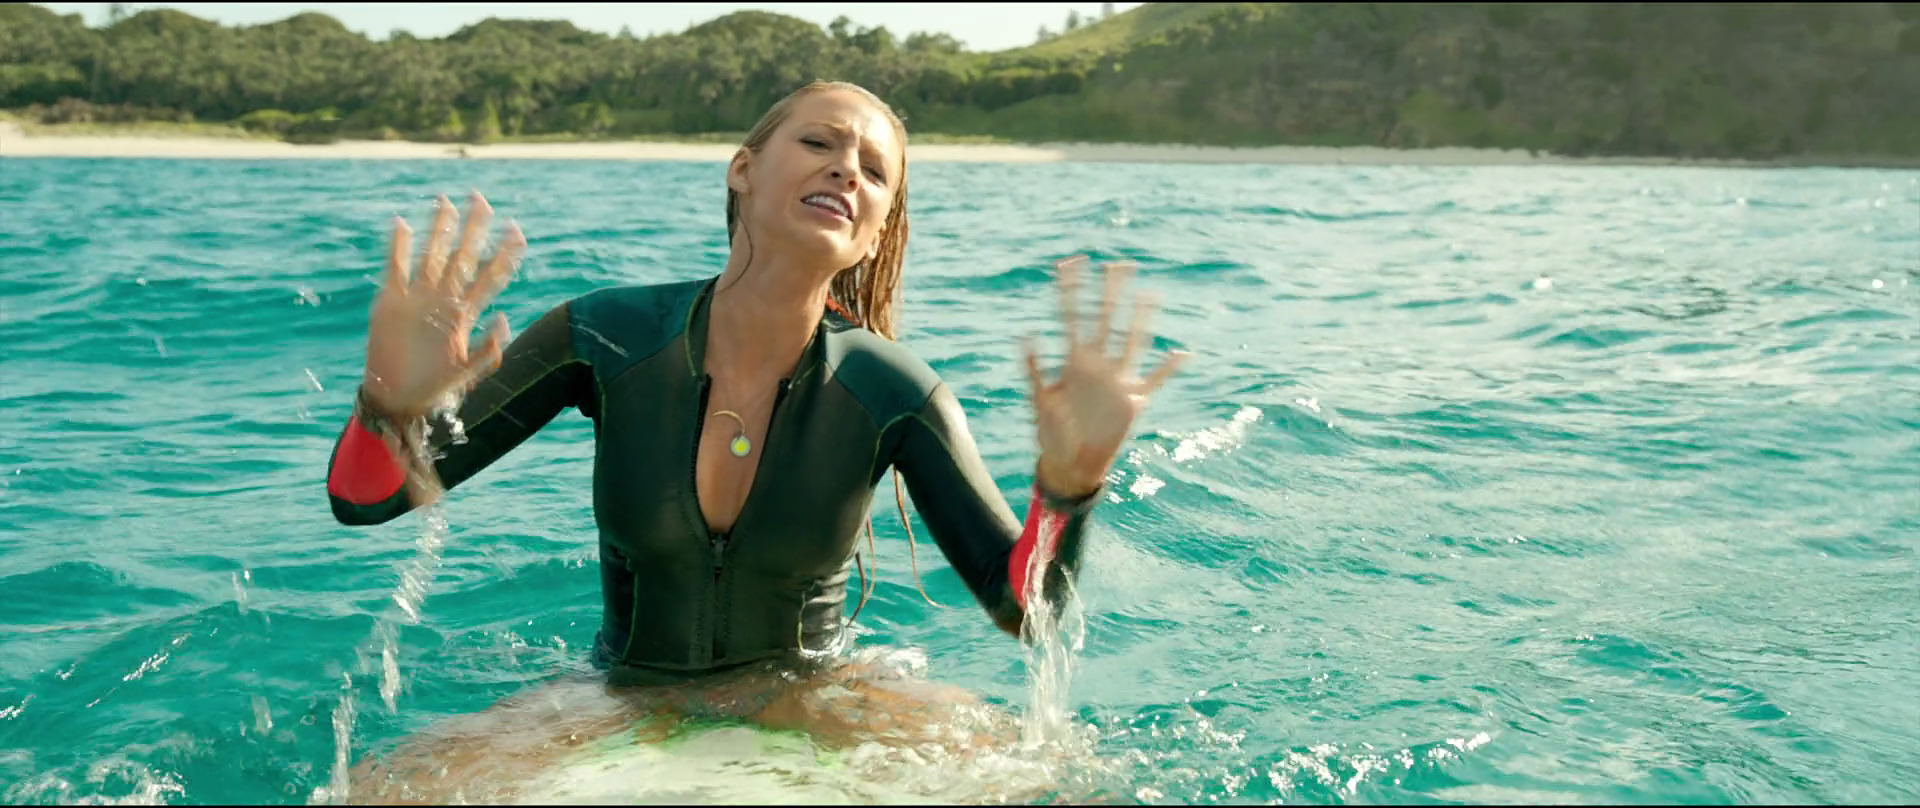 watch full movie online the shallows